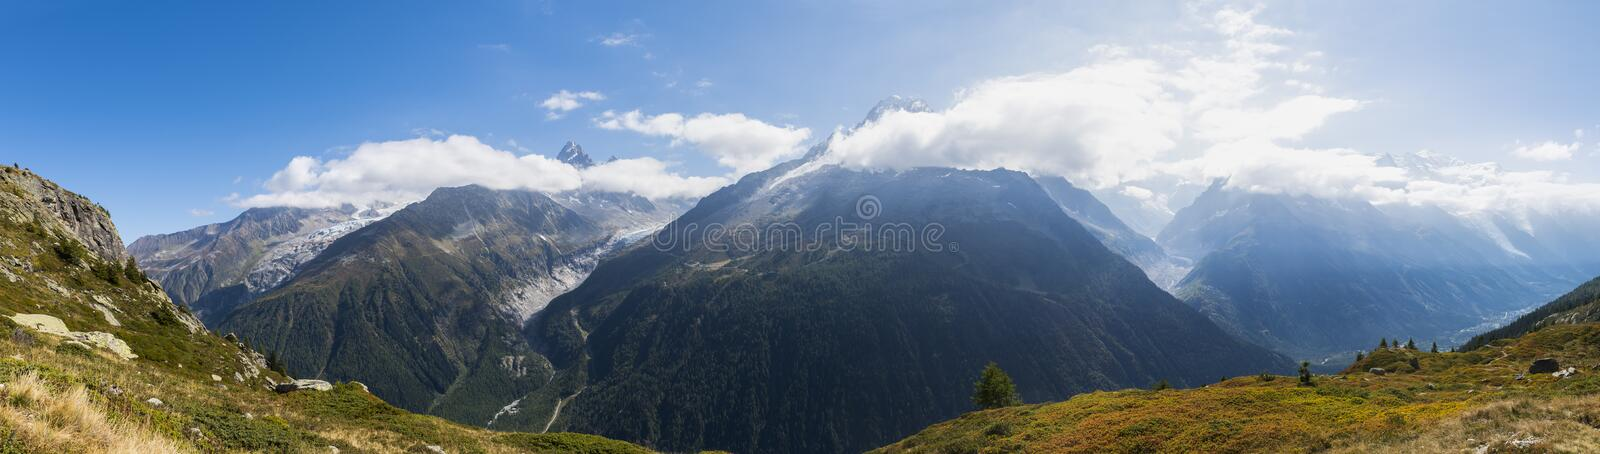 French Alps with Mont Blanc. Chamonix, France - September 25, 2018: French Alps with high mountains in the valley of Chamonix with the Mont Blanc in autumn time royalty free stock photo